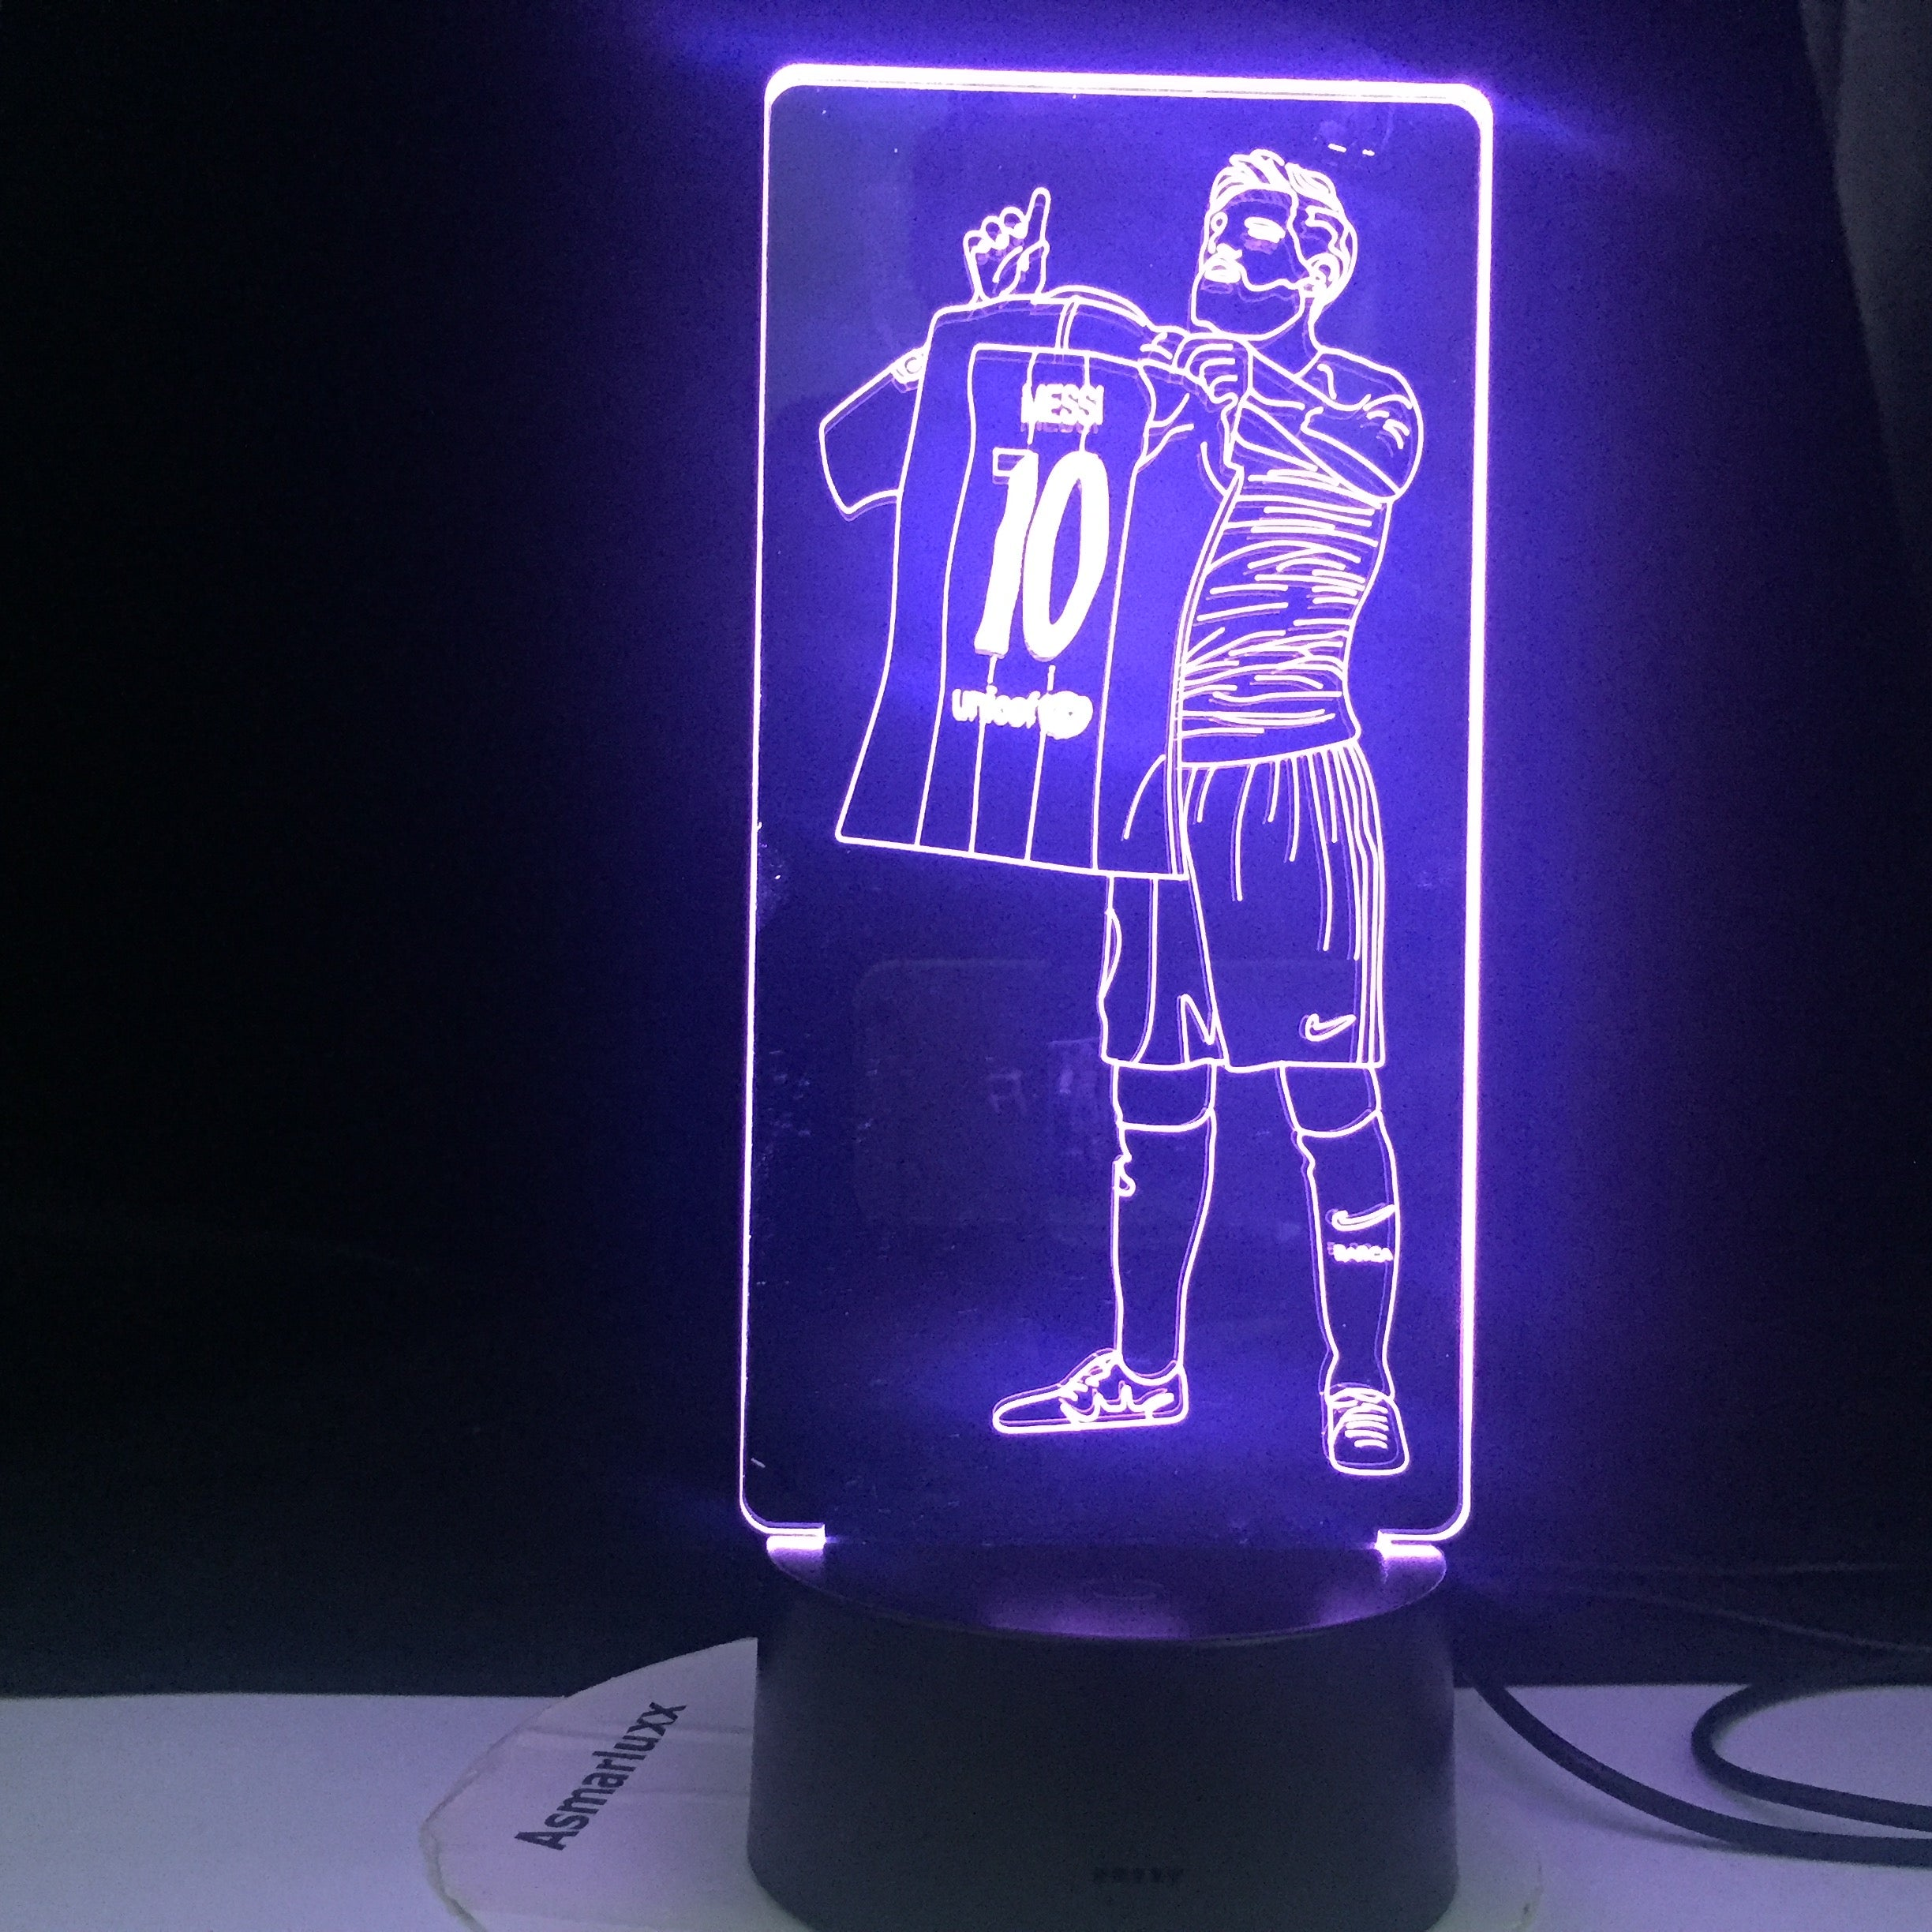 Messi Football Star 10 Figure Led Night Light for Home Room Decoration Nightlight Something about Football Gift Table 3d Lamp